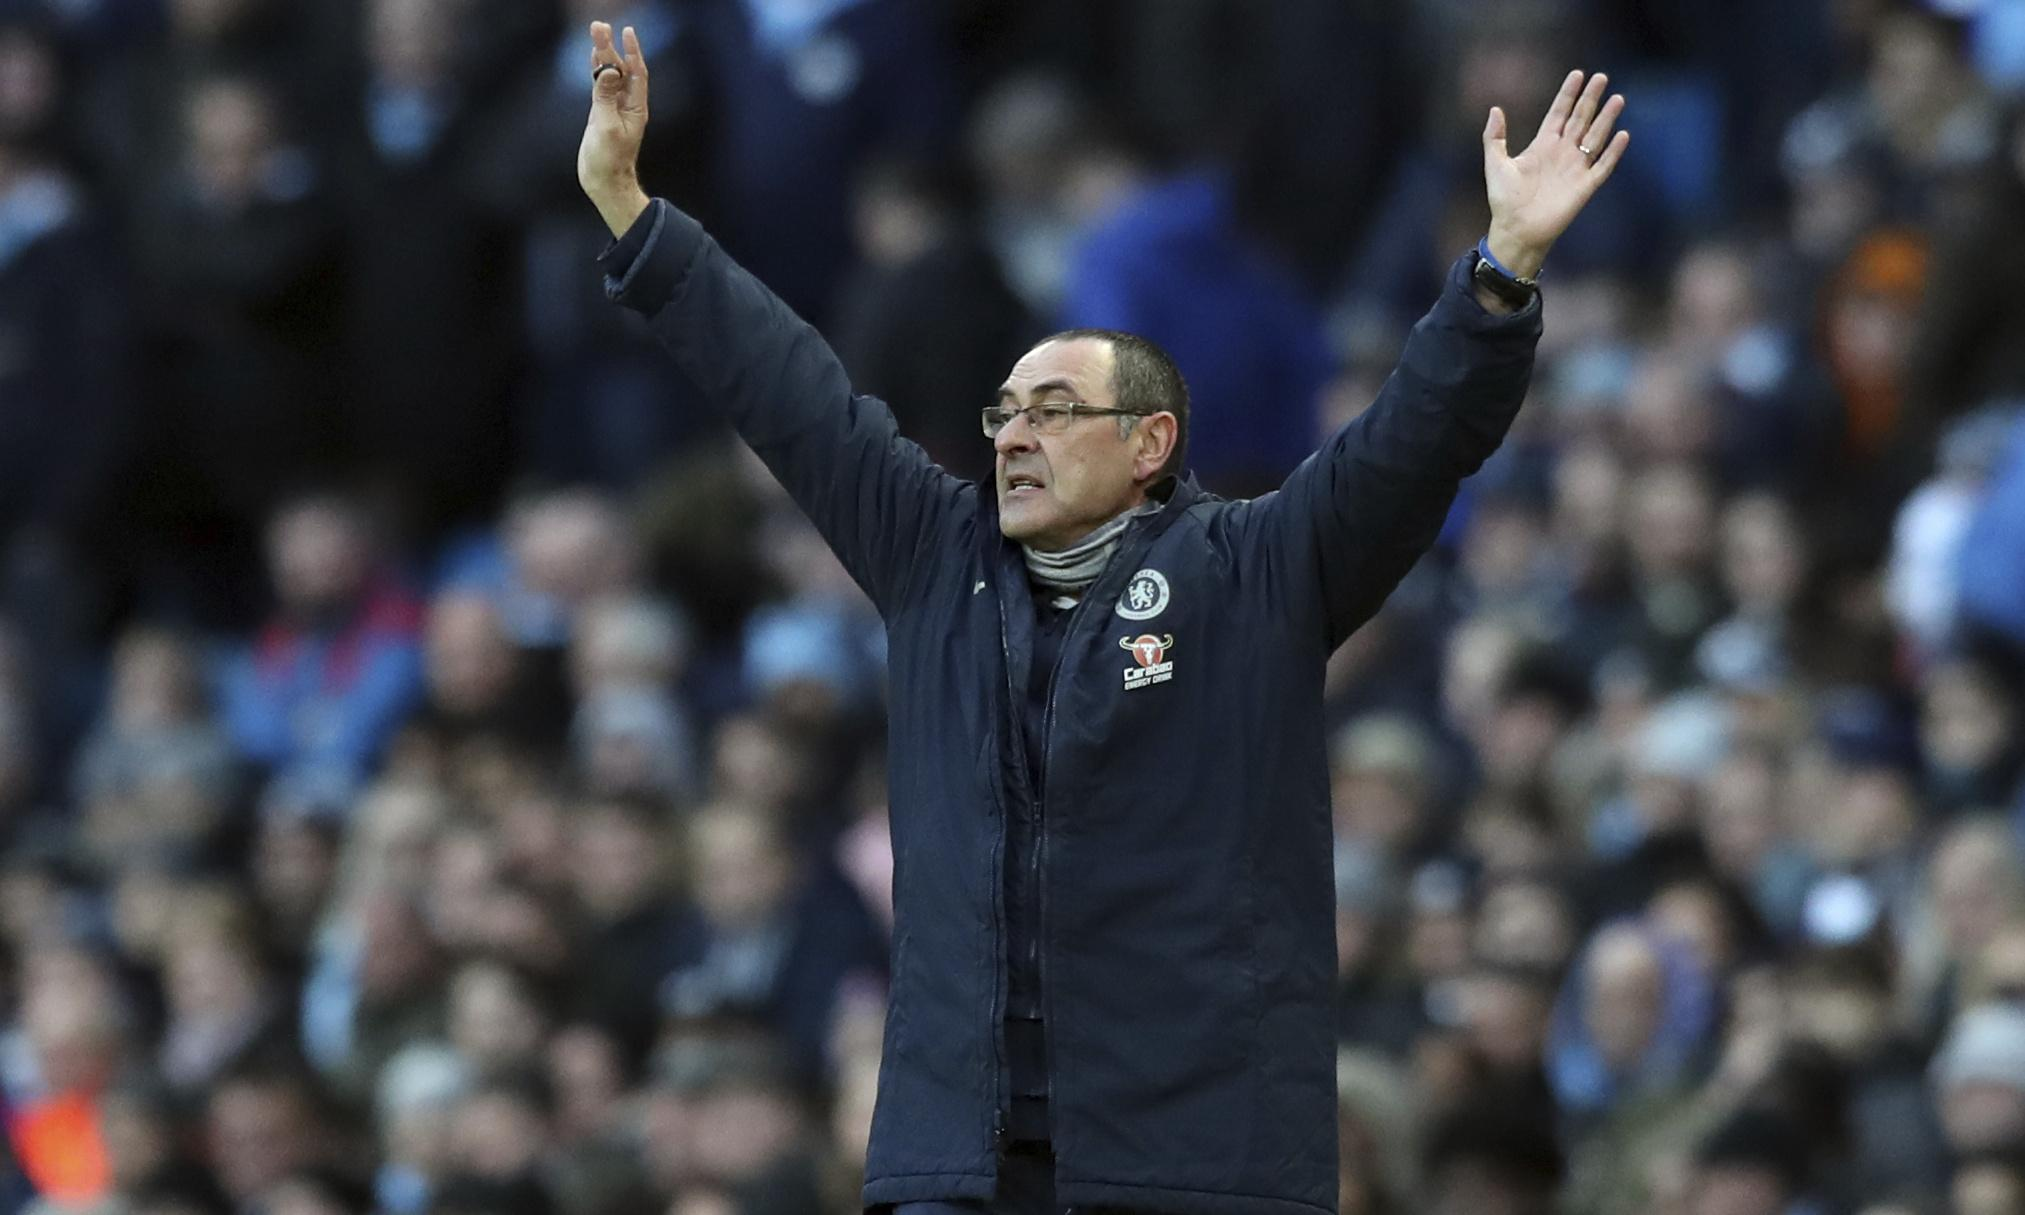 Maurizio Sarri must be given more time to adapt Chelsea, says Gianfranco Zola